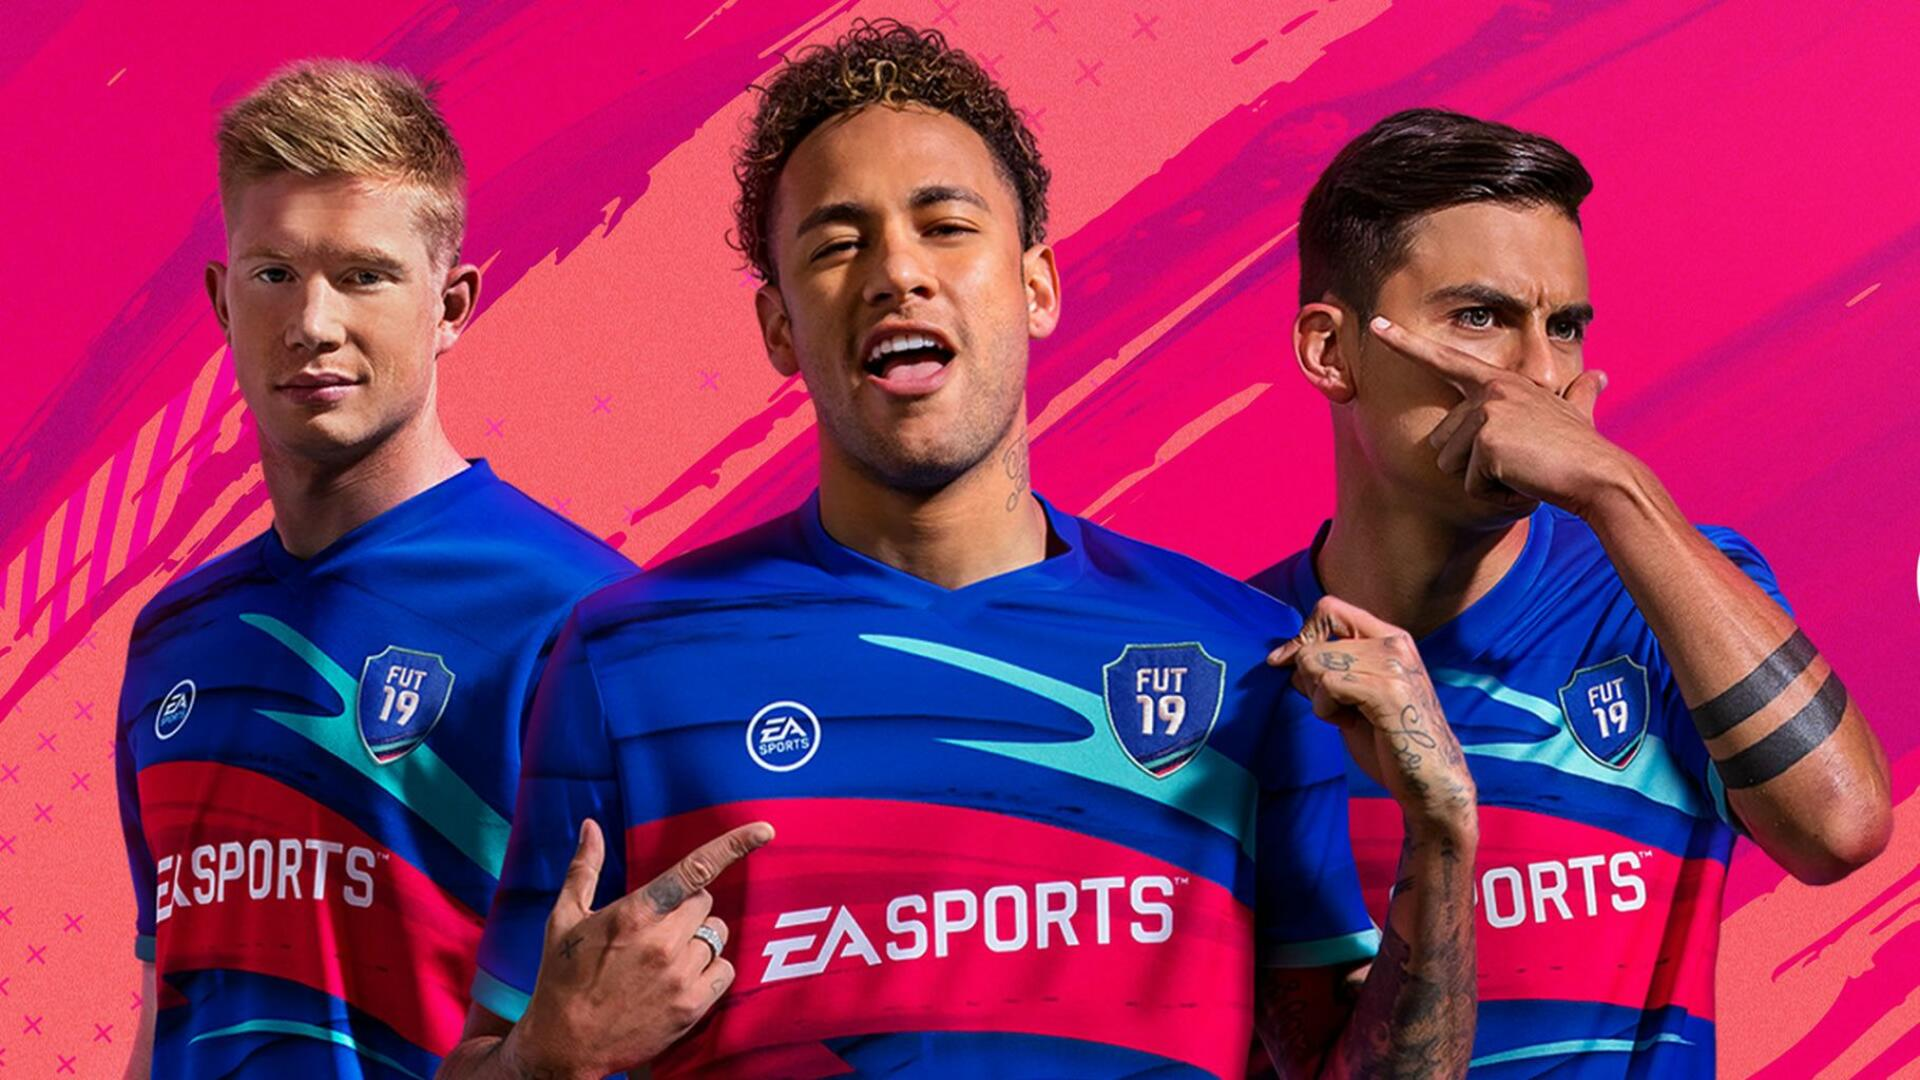 How to Enjoy FIFA's FUT 19 Without Spending a Dime - It's